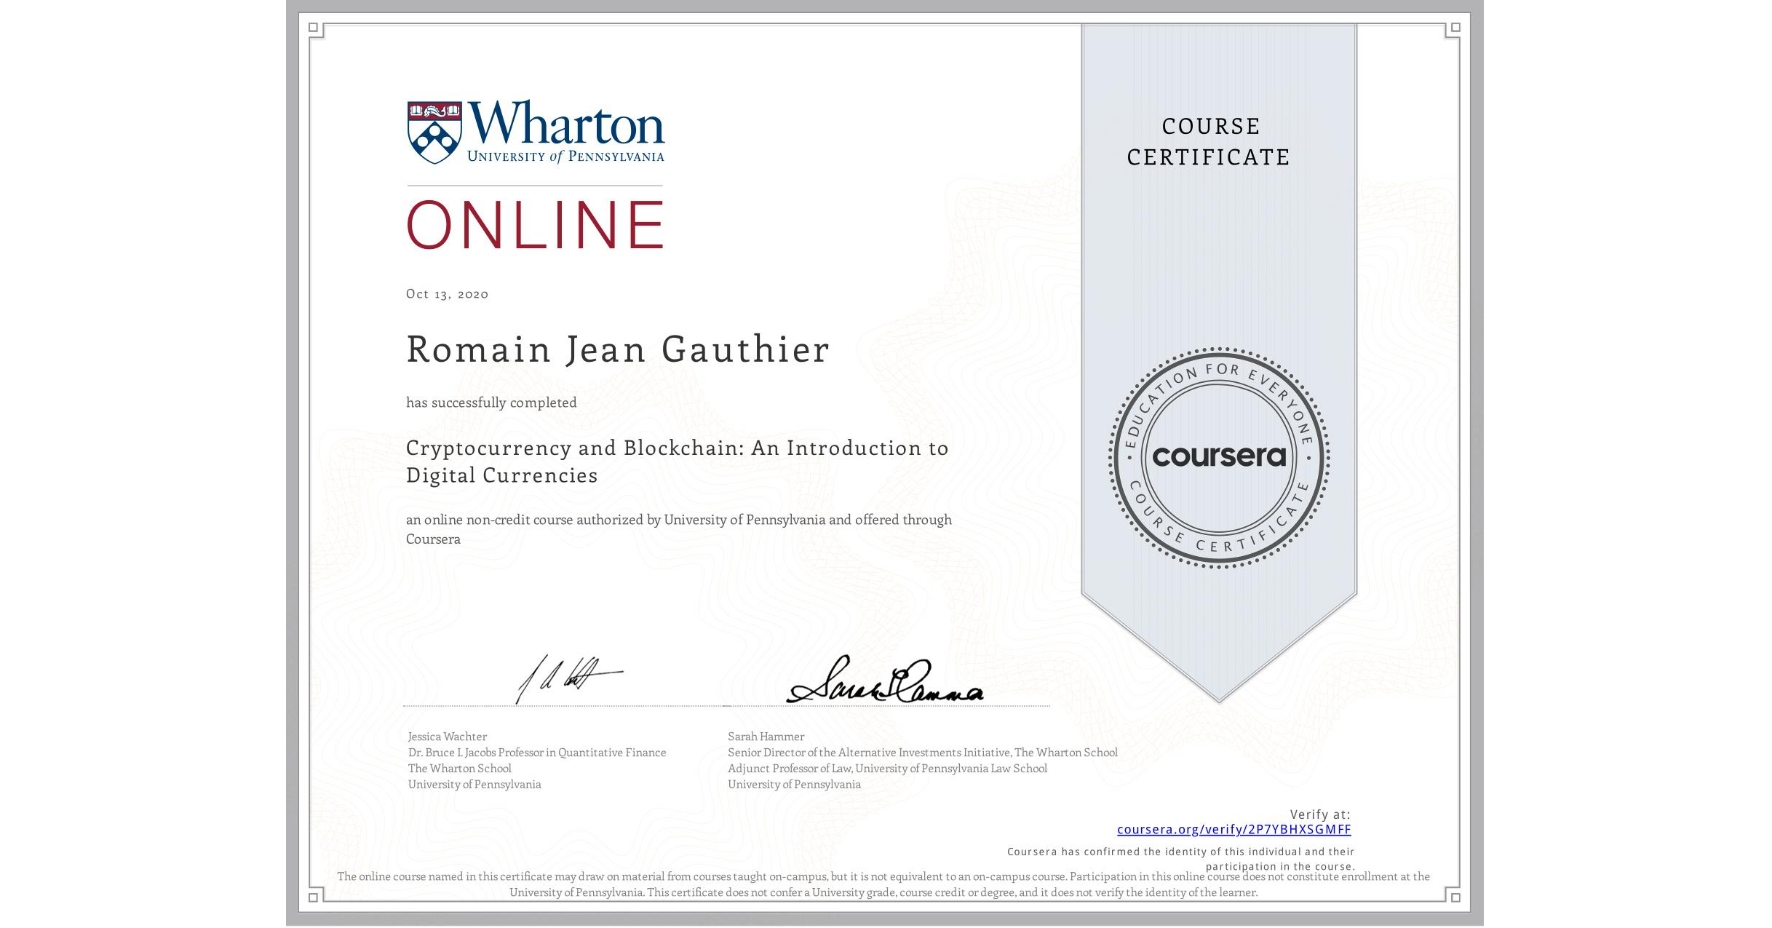 View certificate for Romain Jean  Gauthier, Cryptocurrency and Blockchain: An Introduction to Digital Currencies, an online non-credit course authorized by University of Pennsylvania and offered through Coursera